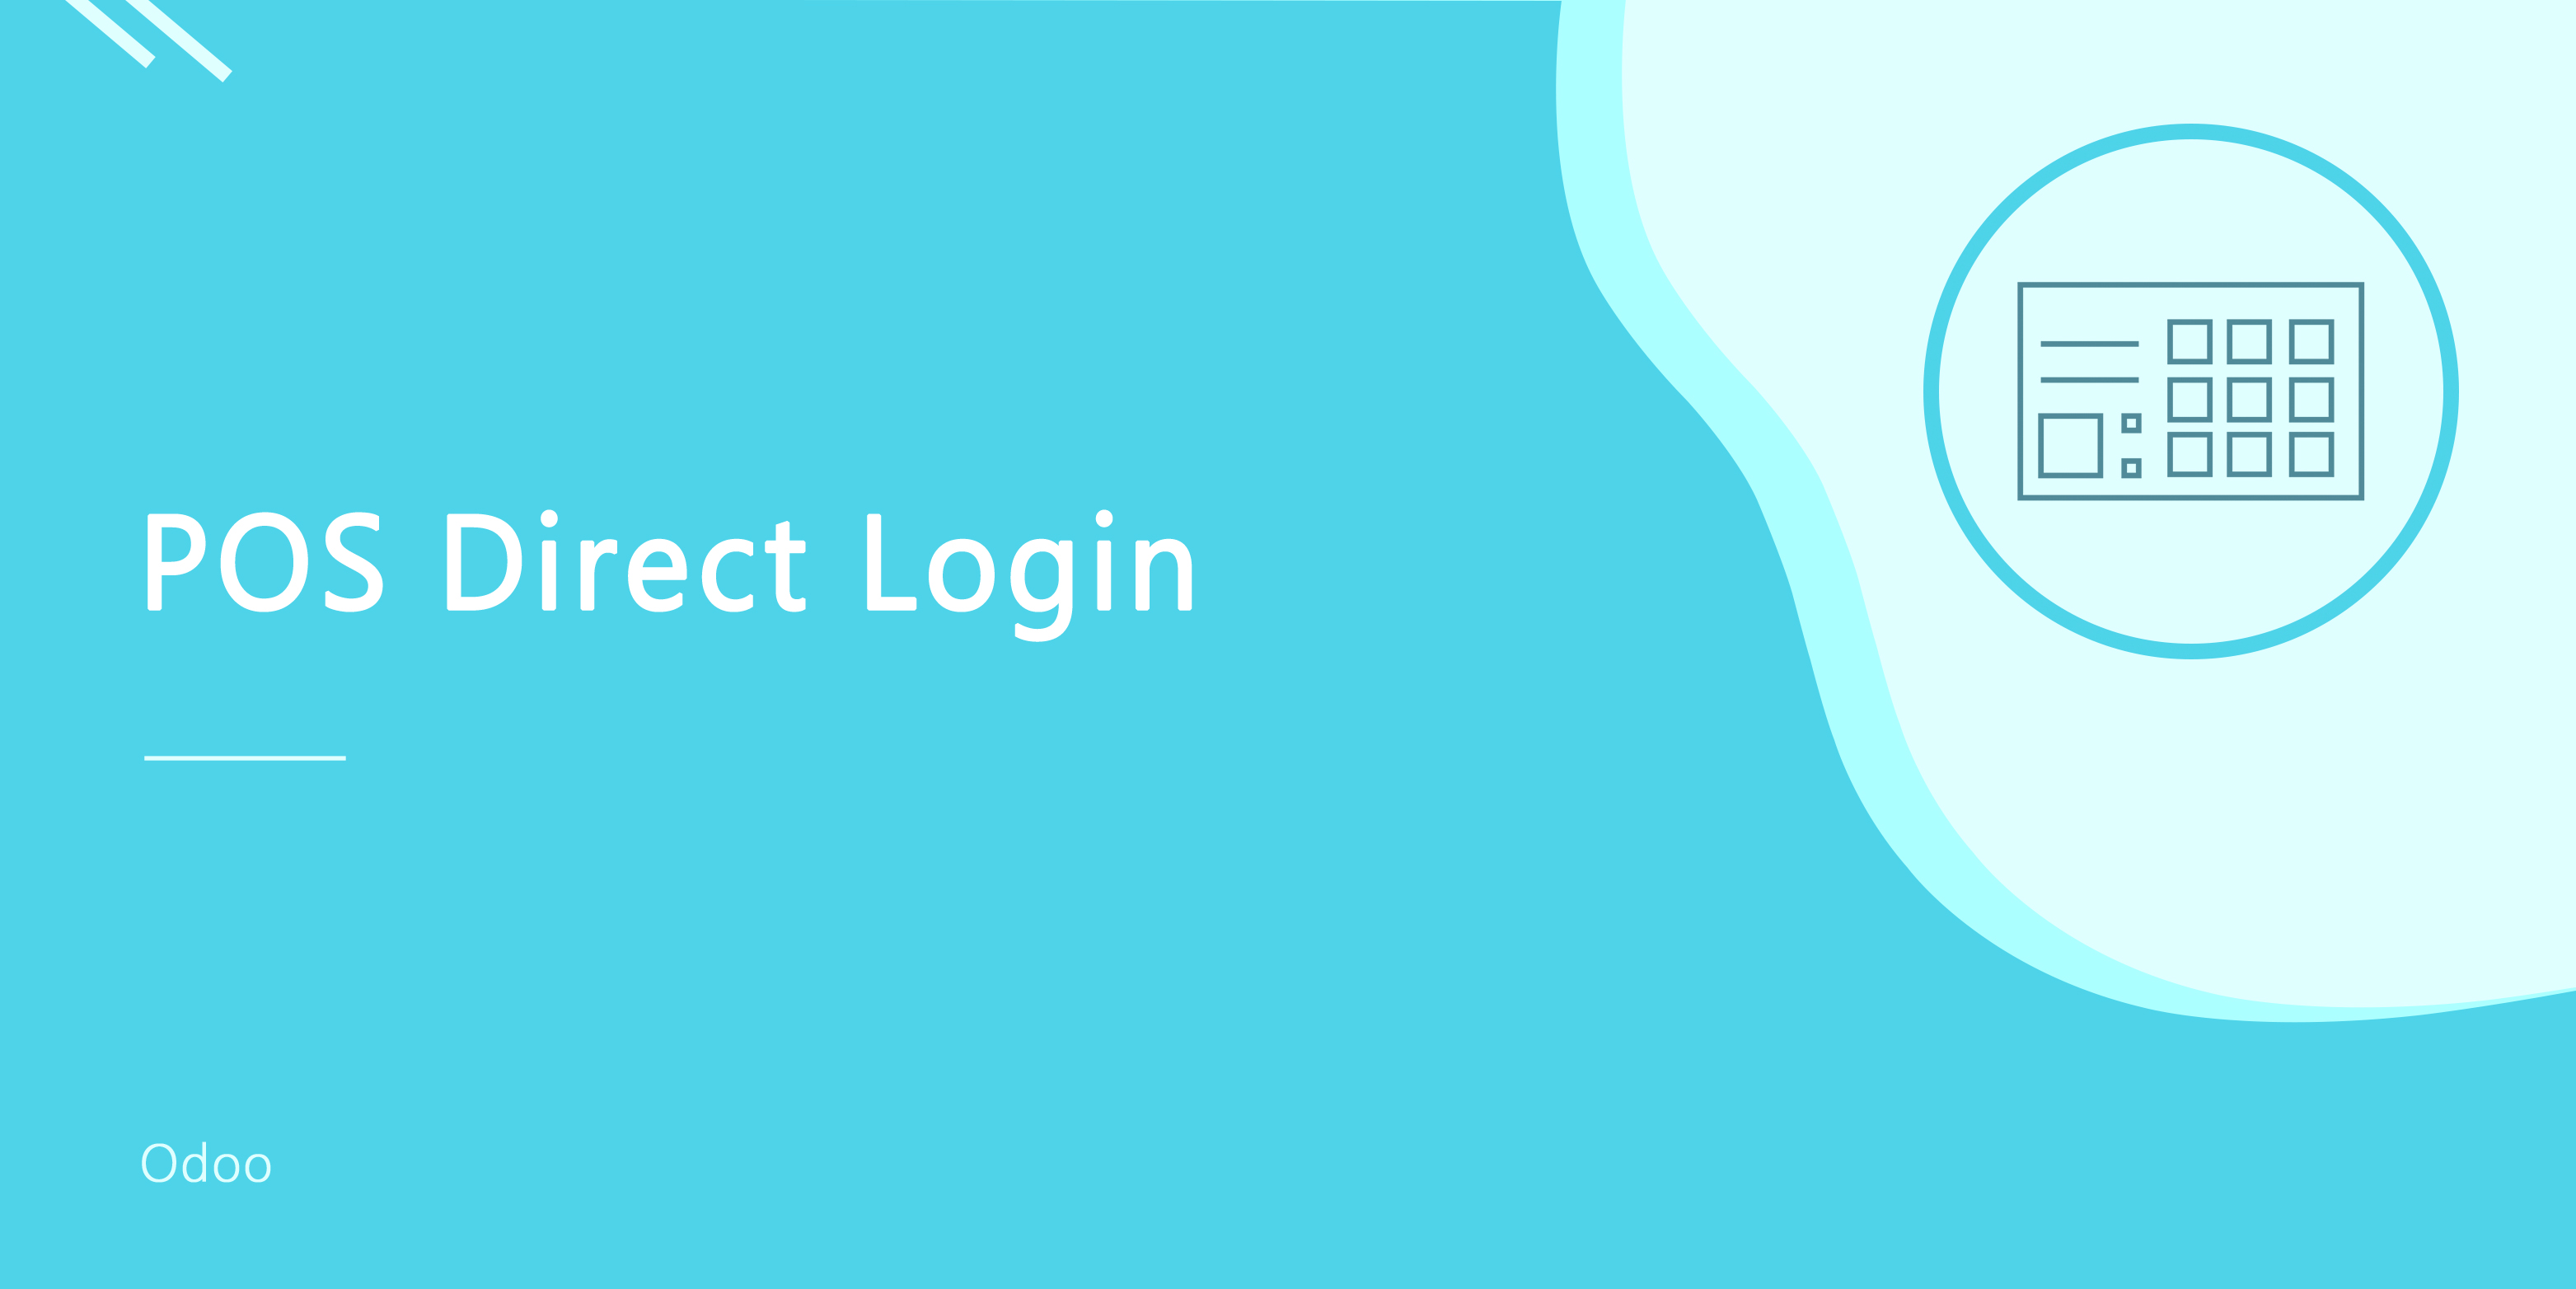 POS Direct Login